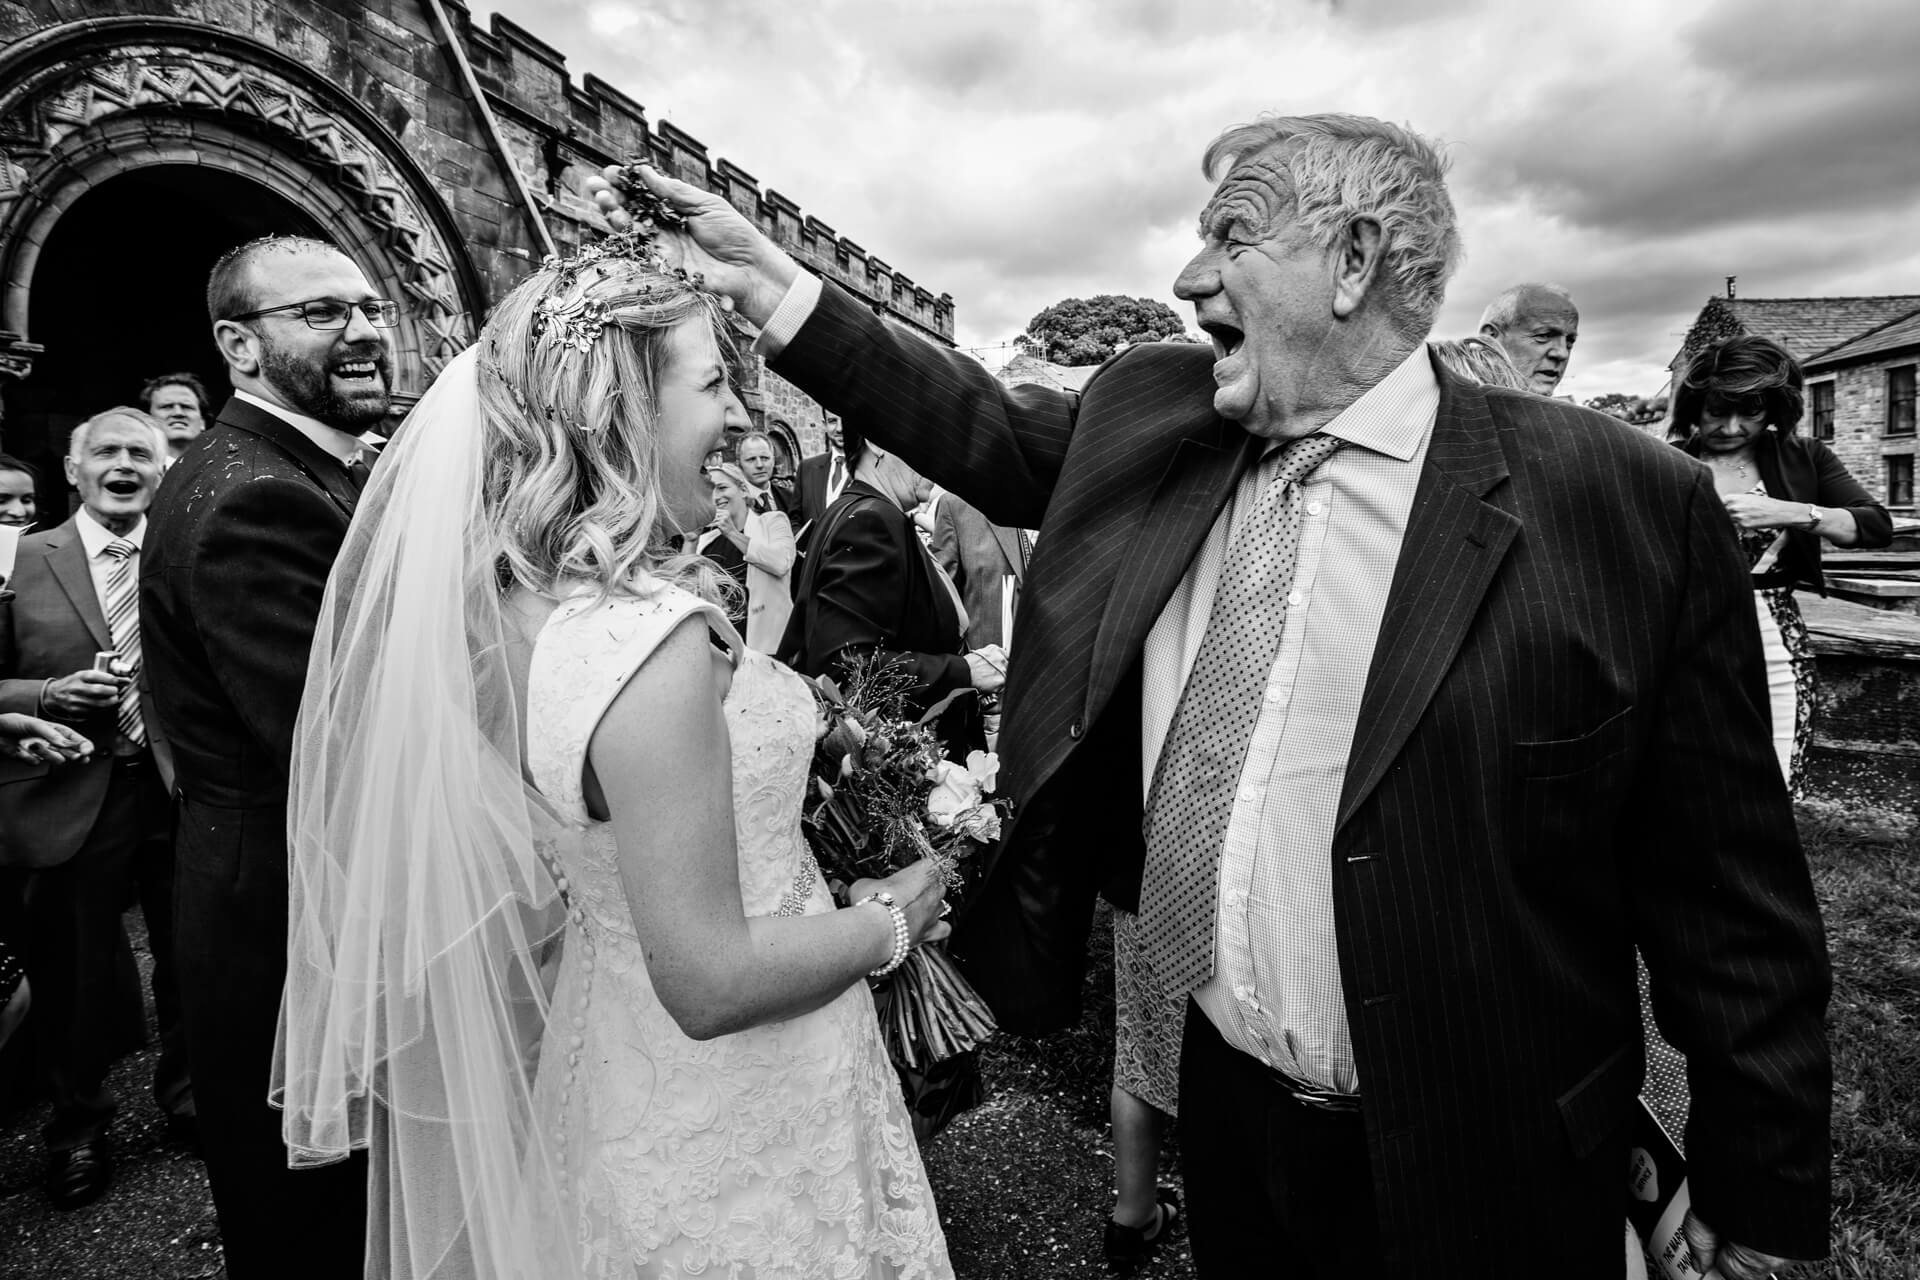 uncle of the bride throwing confetti over the bride